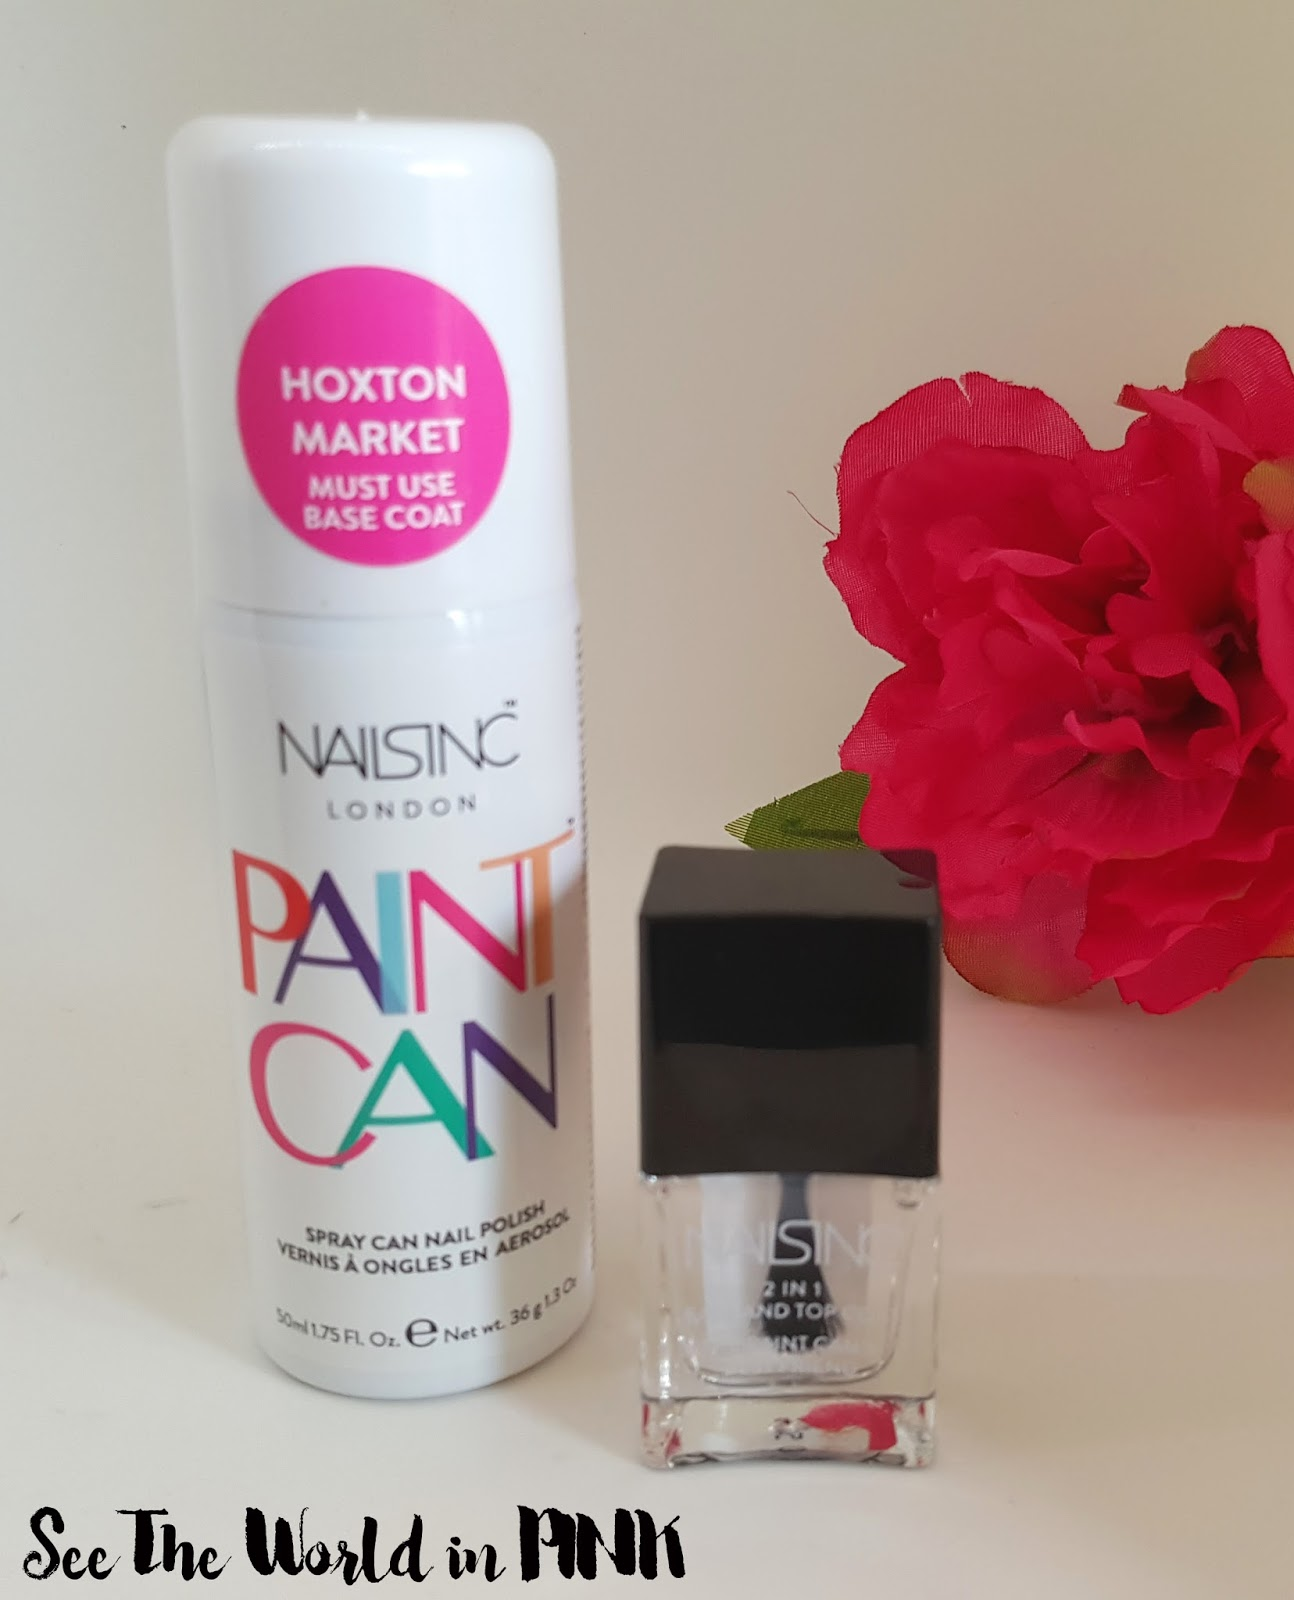 Nails Inc Paint Can Review (Spray On Polish) + an update 24 hours later